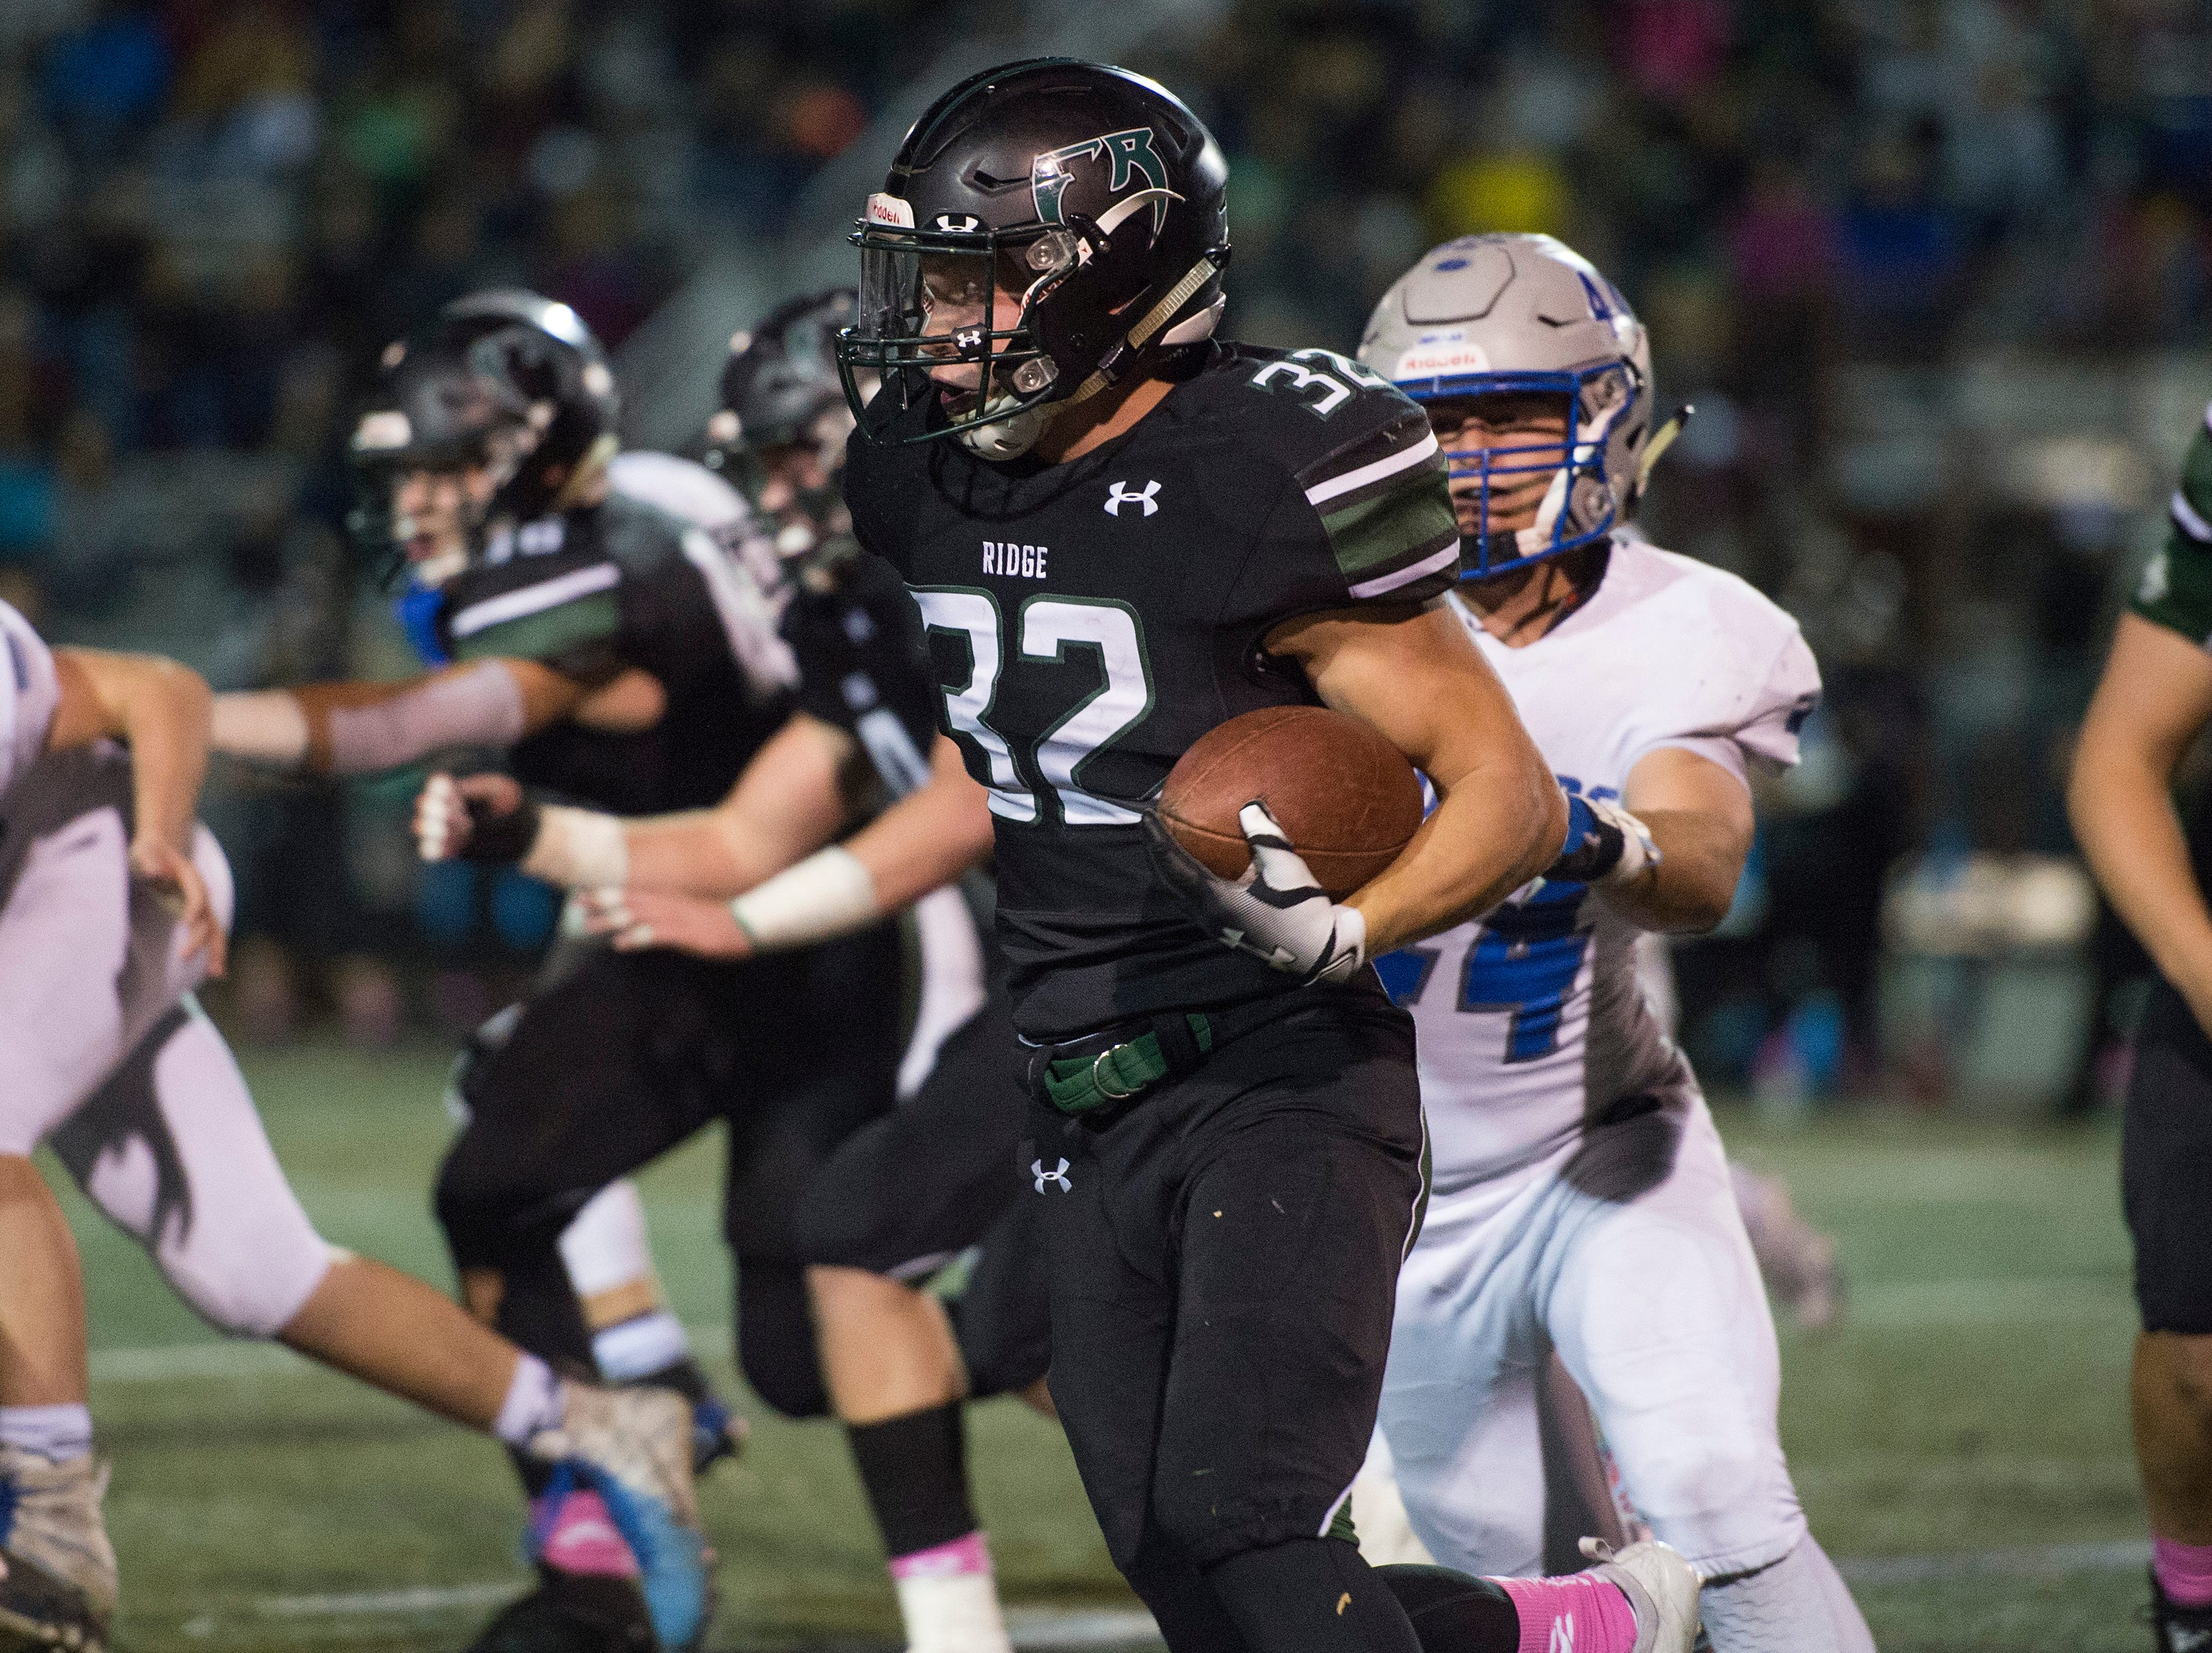 Fossil Ridge's Casey Knutsen breaks away from Impalas defense as he runs the ball in a game against Poudre at French Field on Friday, October 26, 2018.